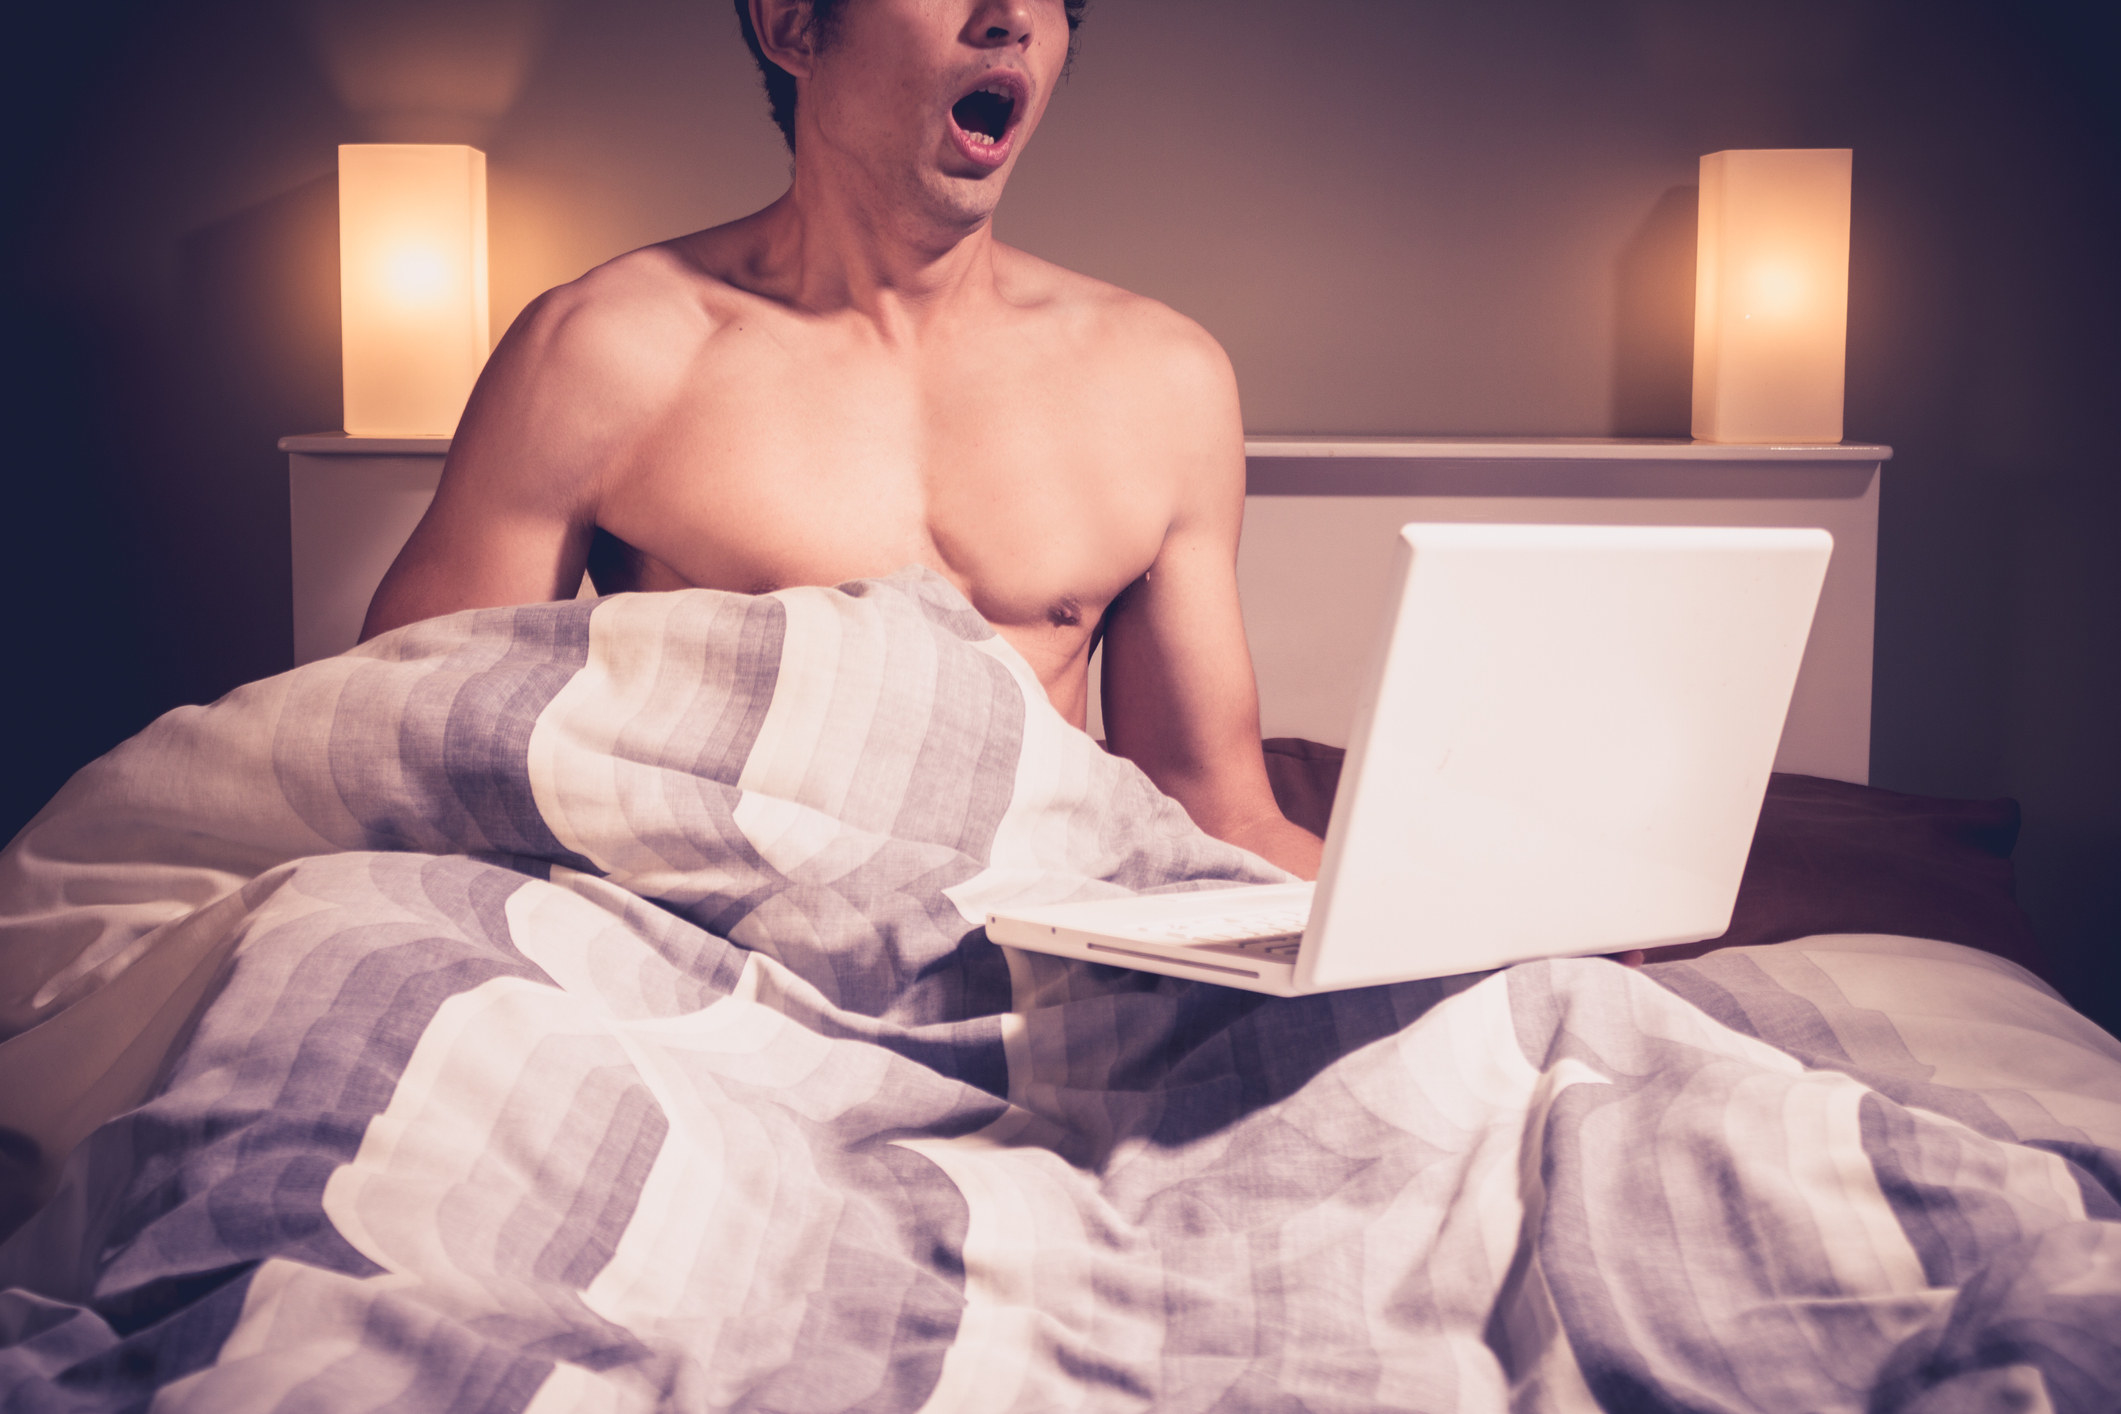 A man in bed with a laptop